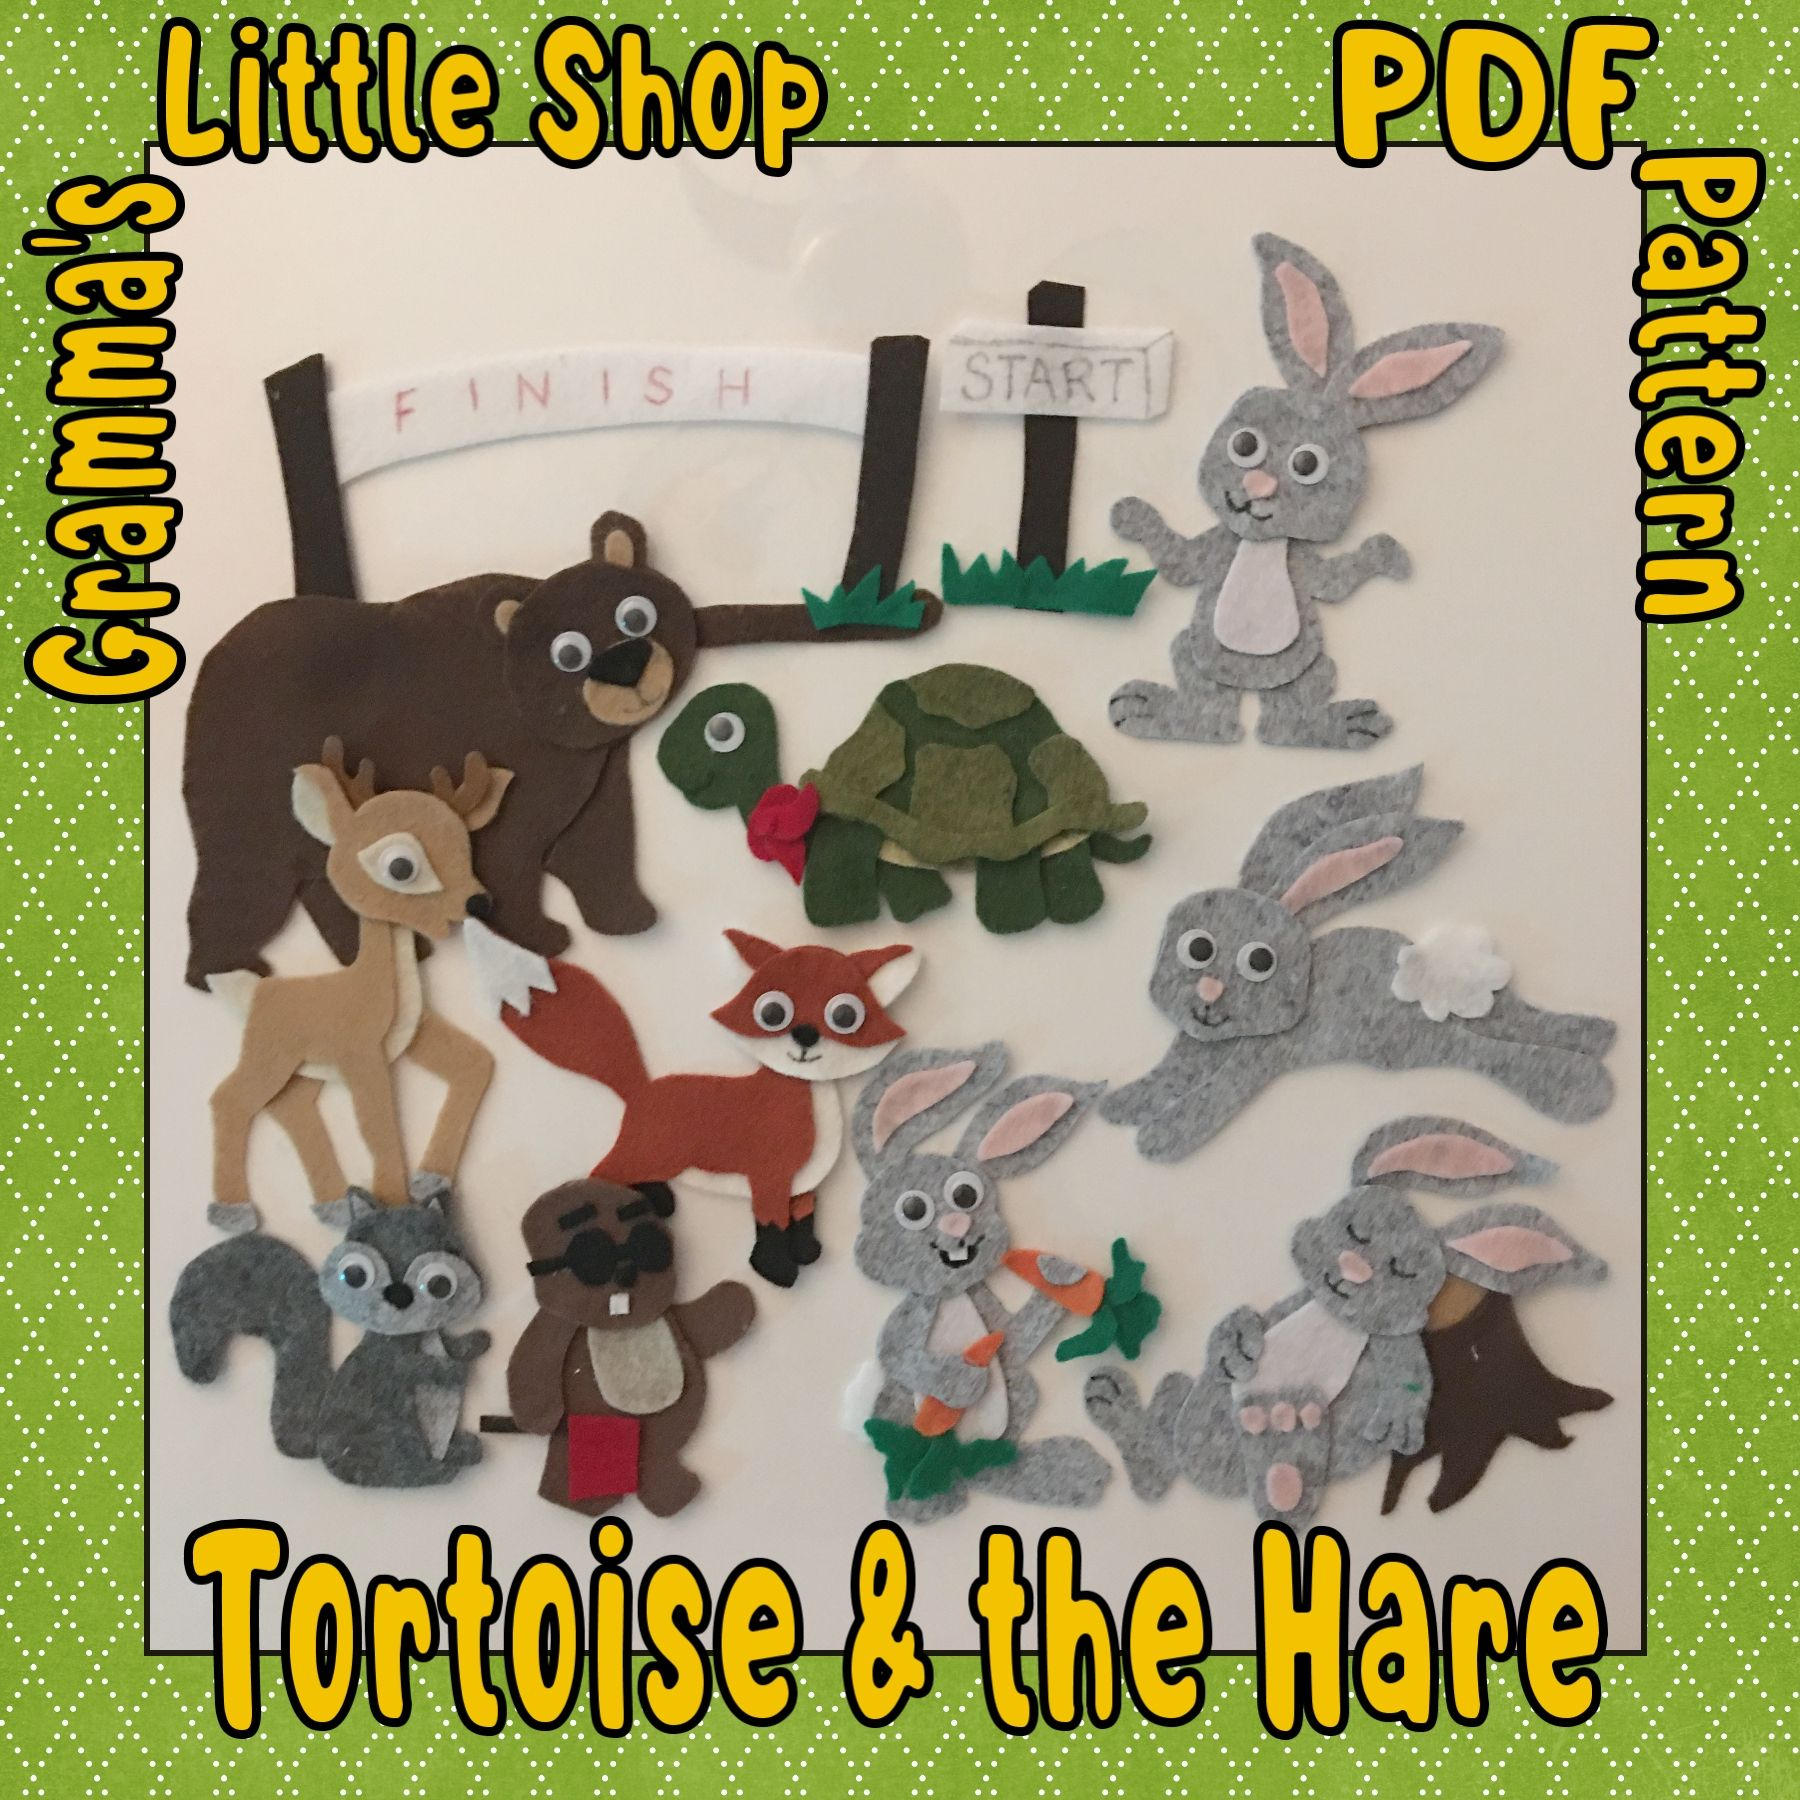 The Tortoise And The Hare Story Pdf